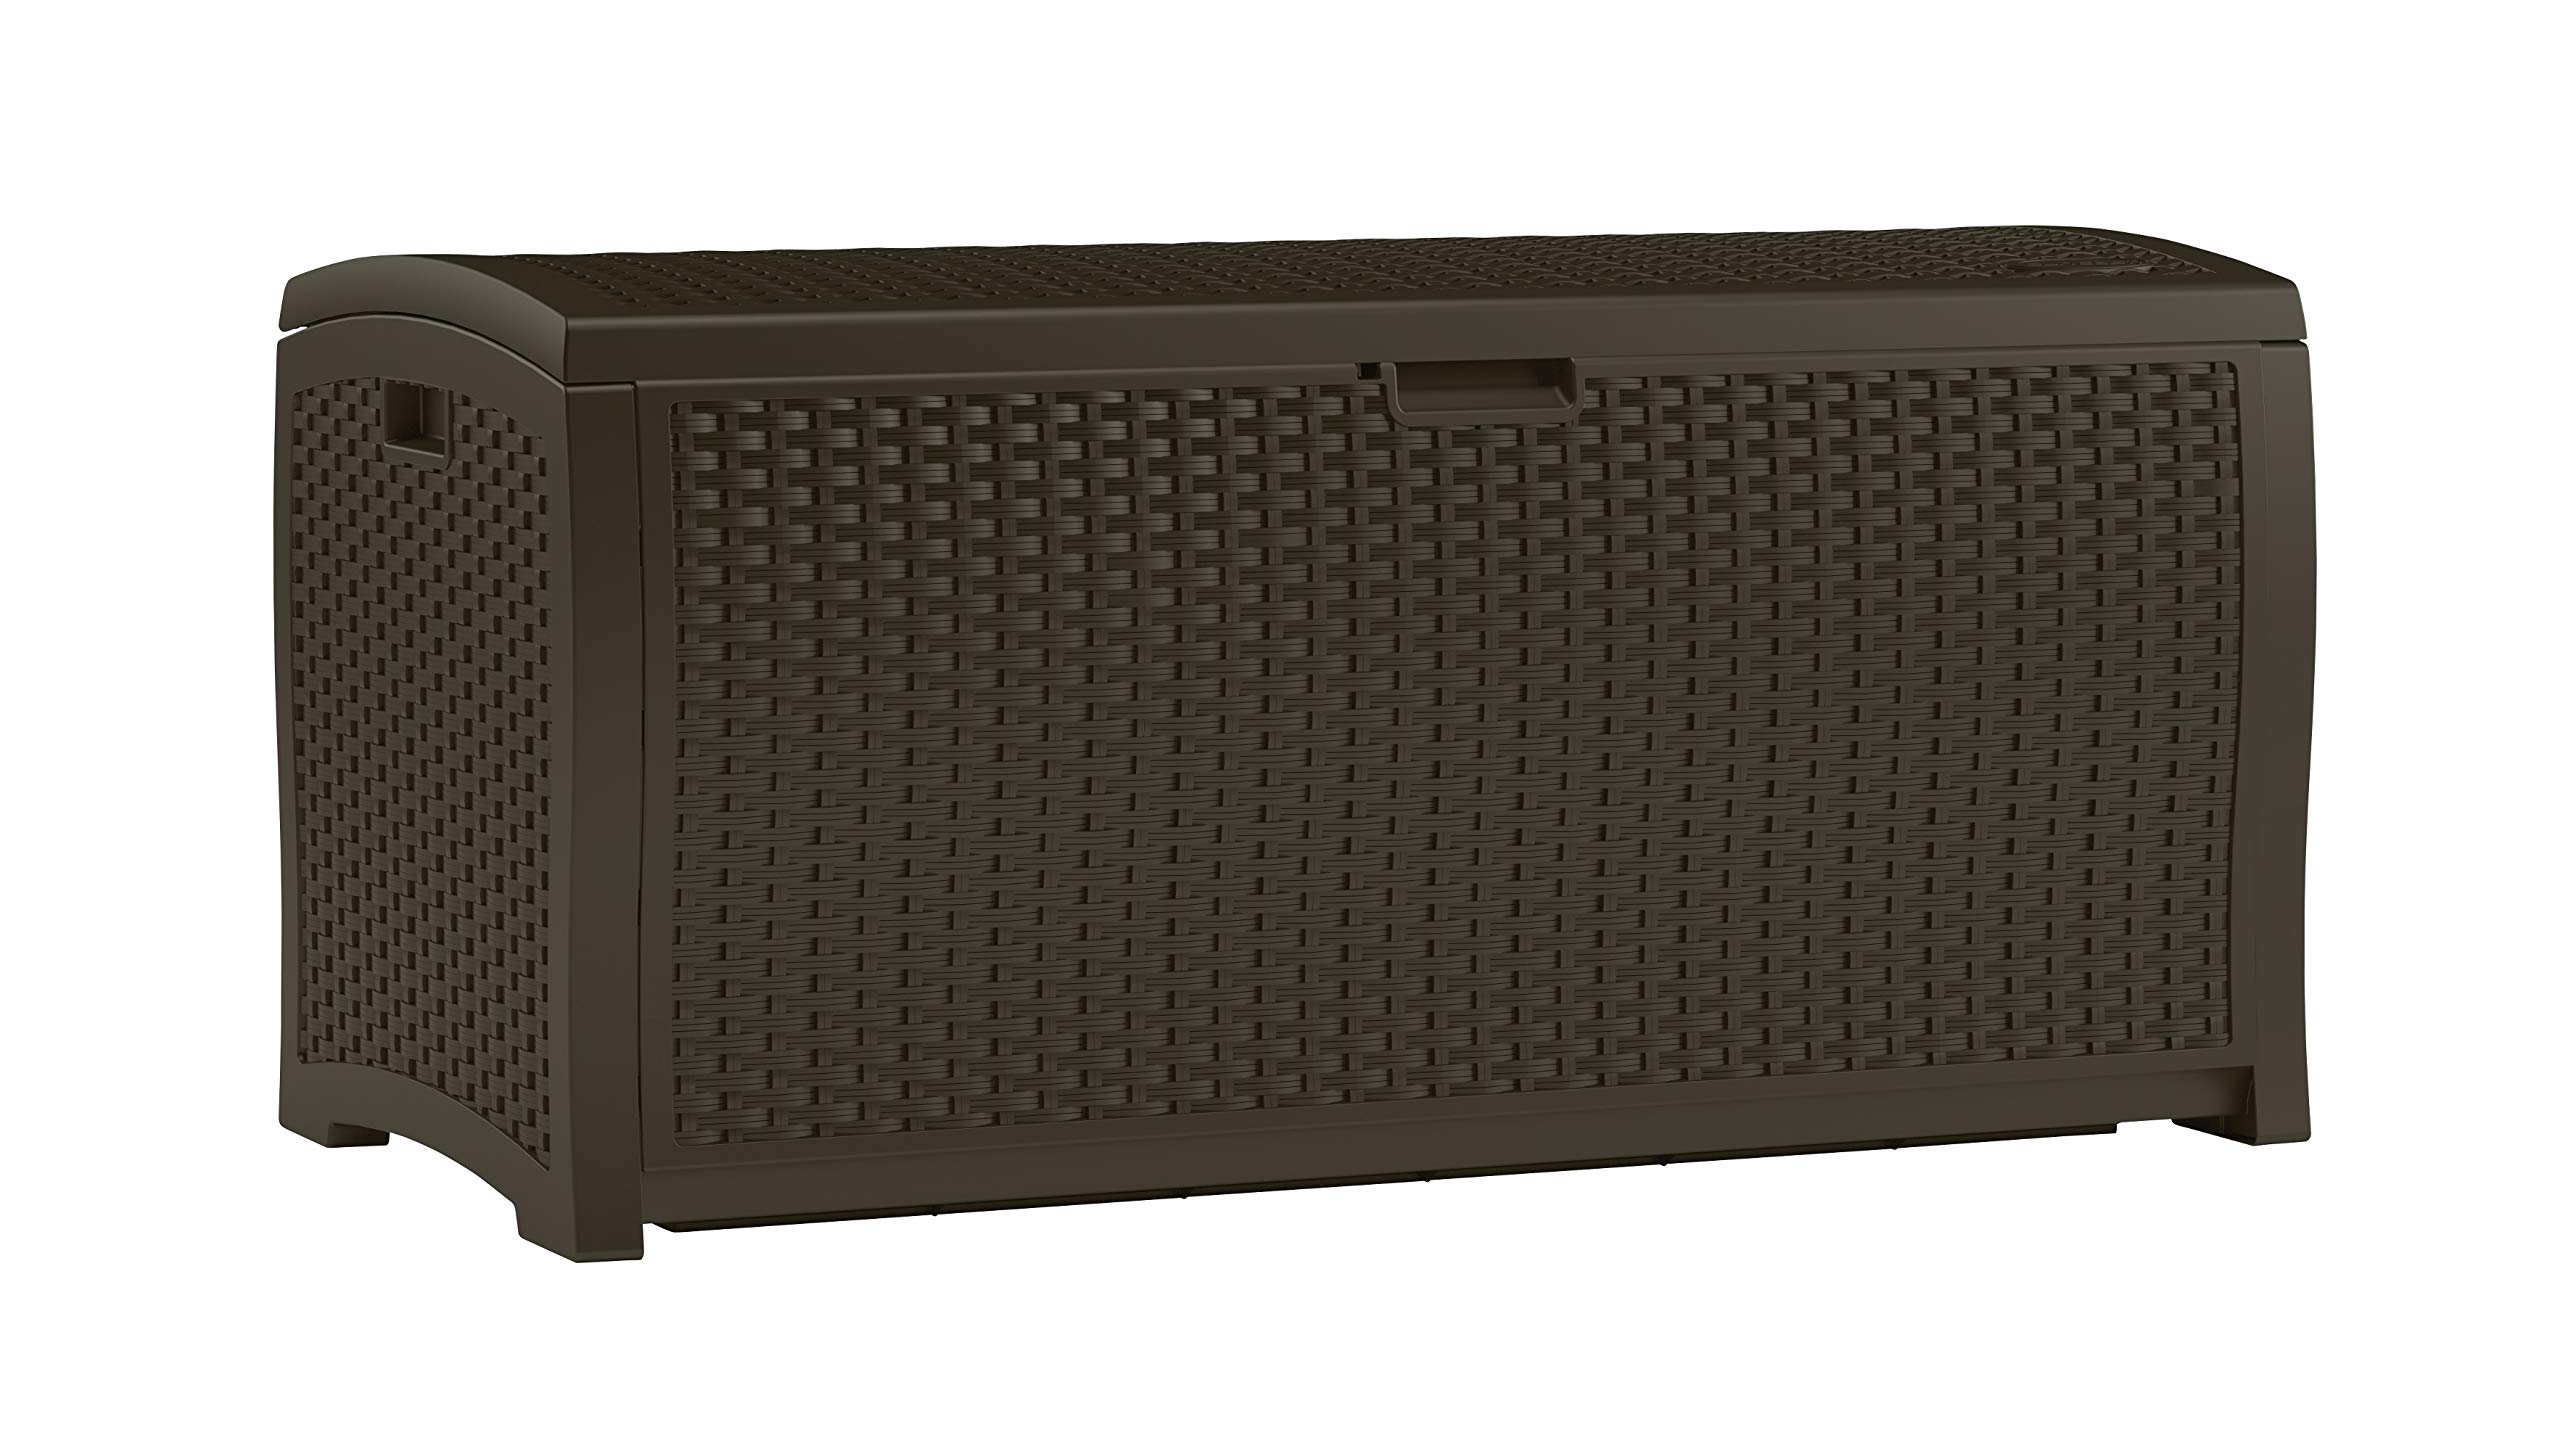 Suncast 99 Gallon Resin Wicker Patio Storage Box - Water Resistant Outdoor Storage Container for Toys, Furniture, Yard Tools - Store Items on Deck, Porch, Backyard - Mocha by Suncast